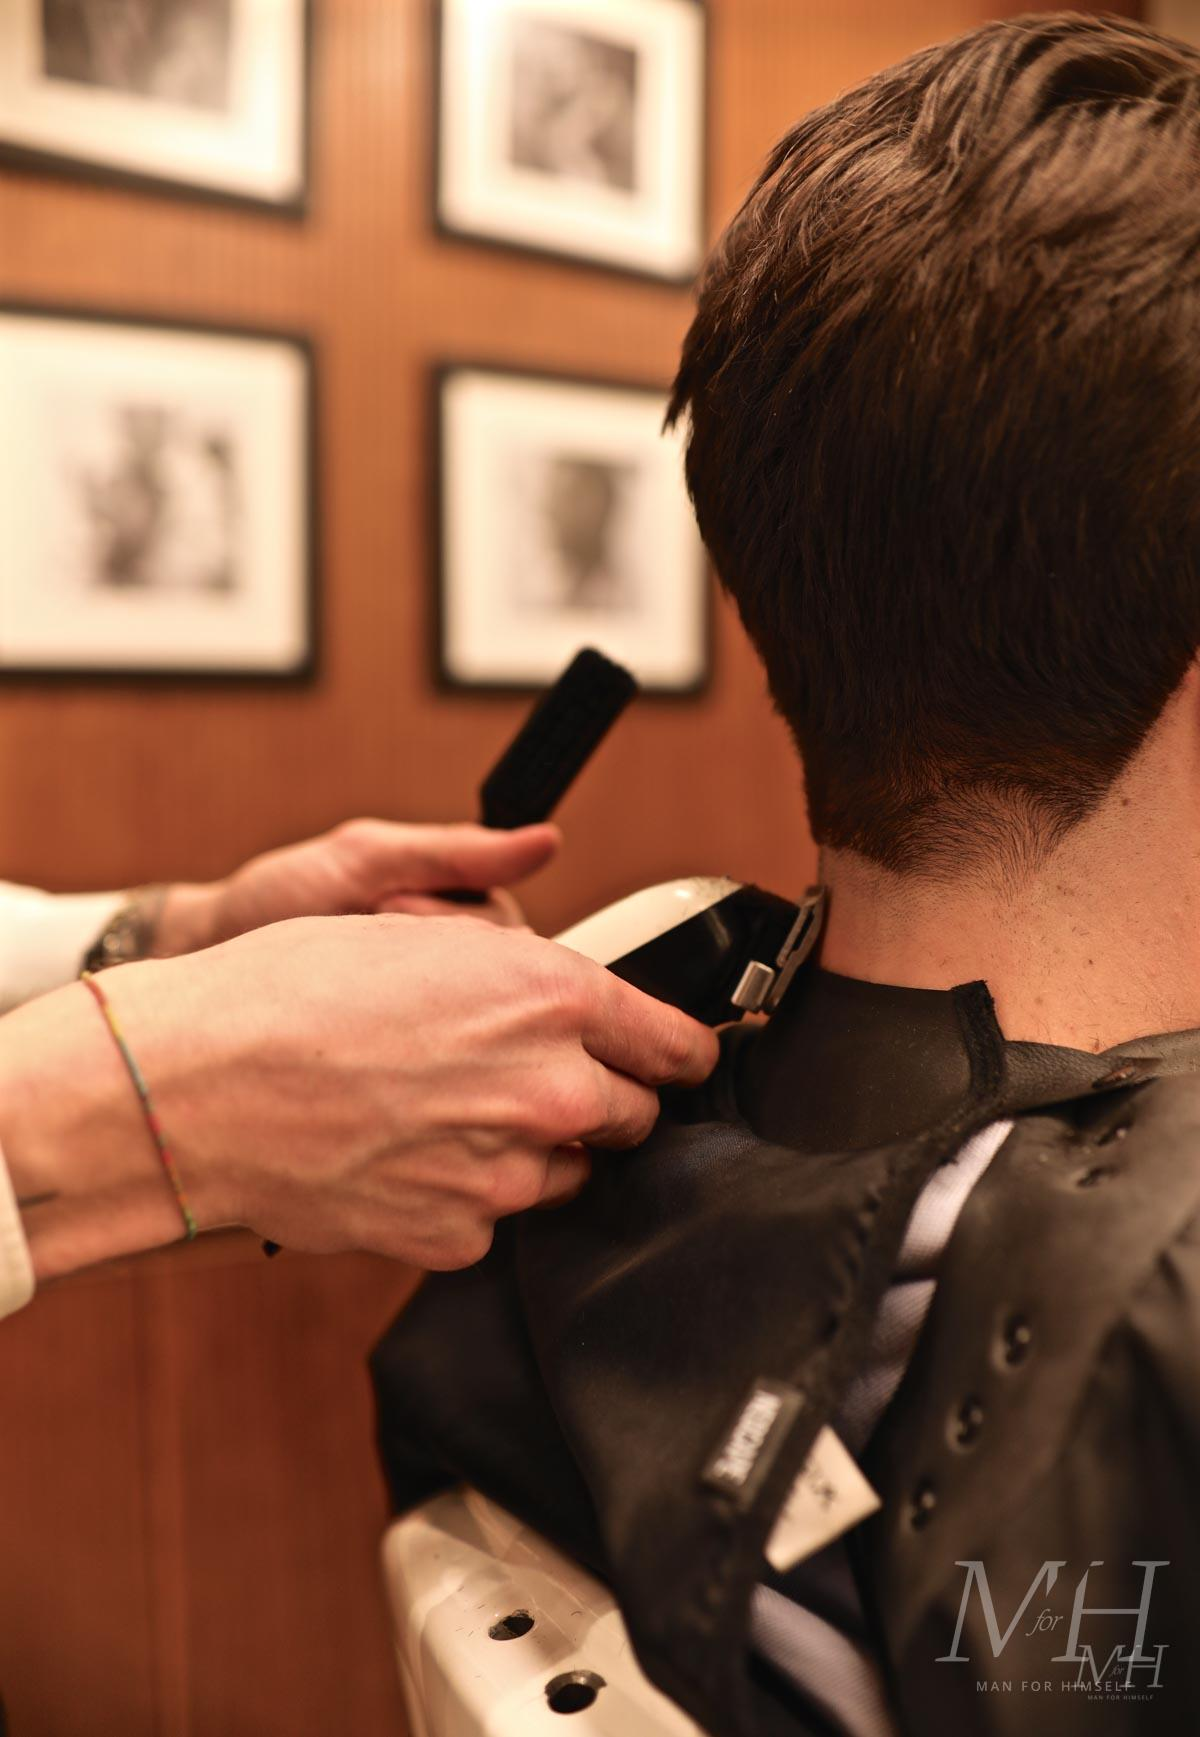 acqua-di-parma-uk-barbershop-man-for-himself-7